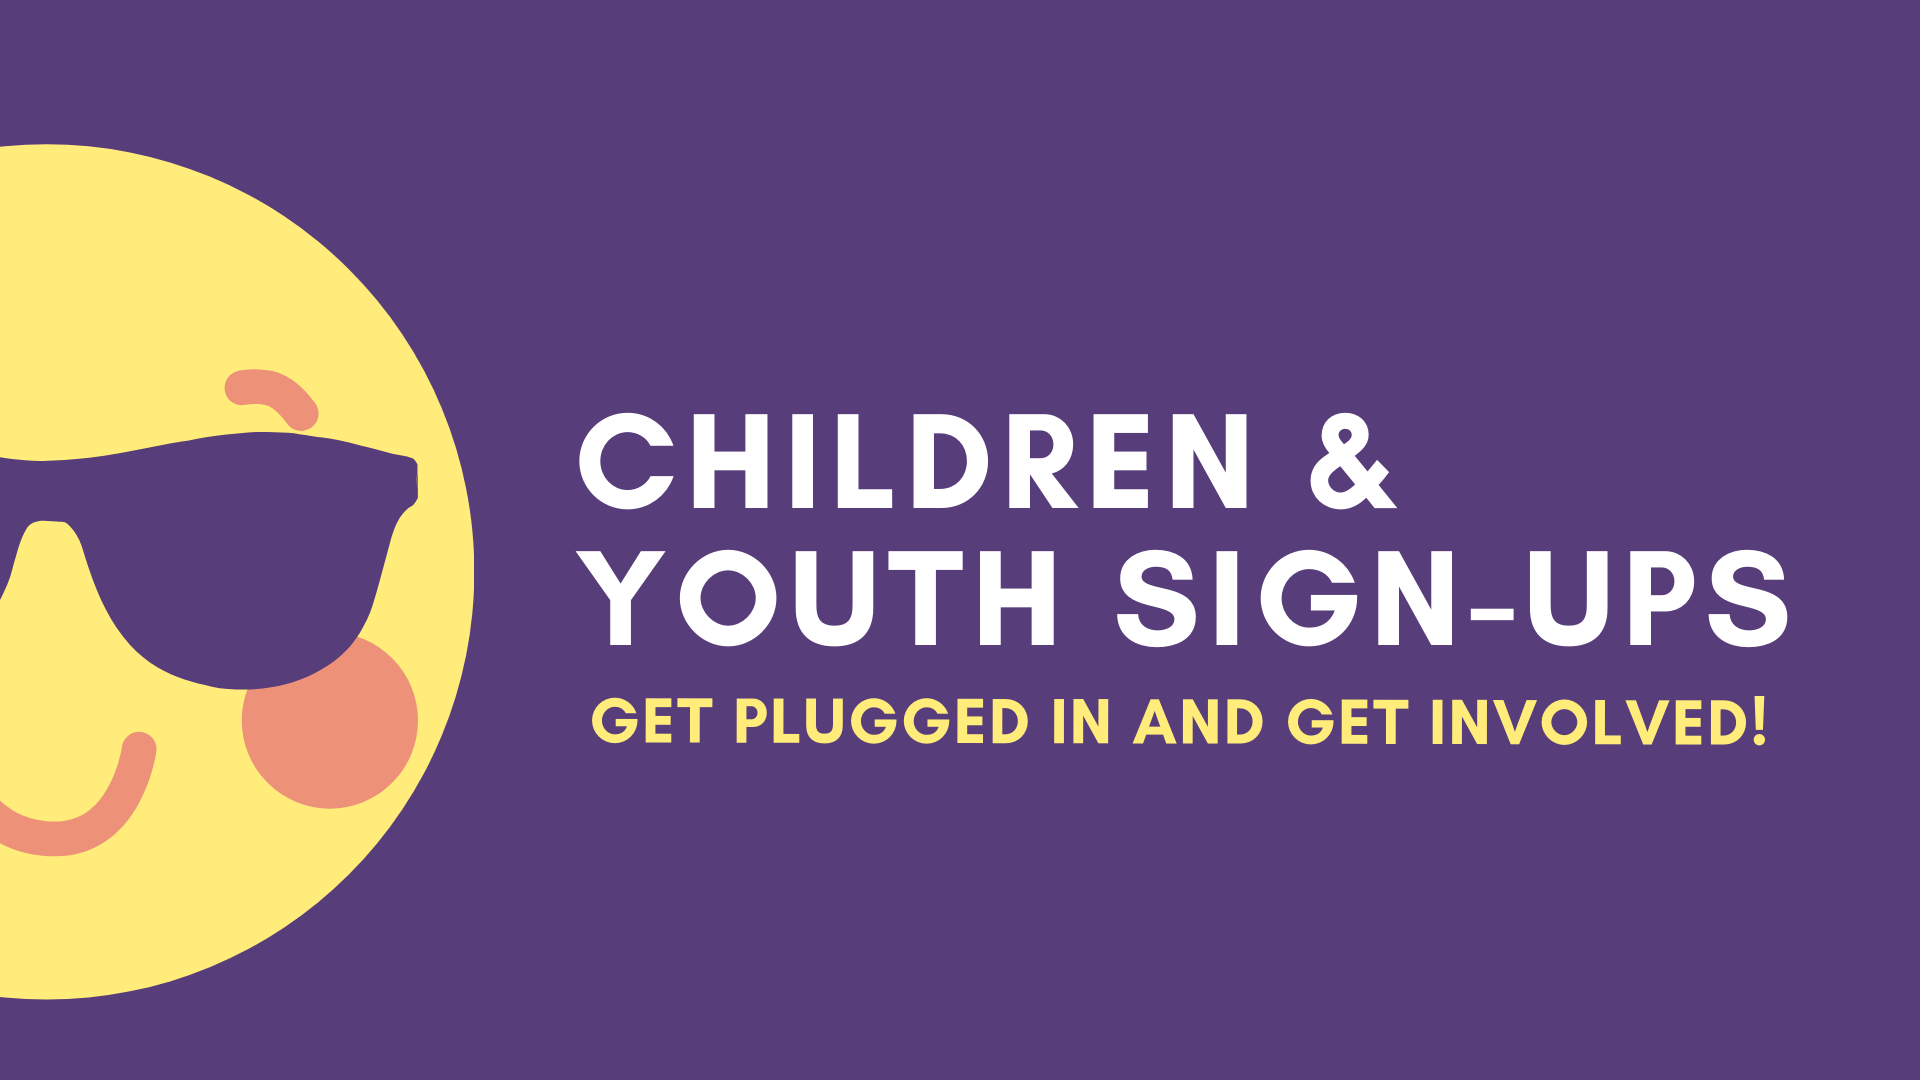 children & Youth sign-ups